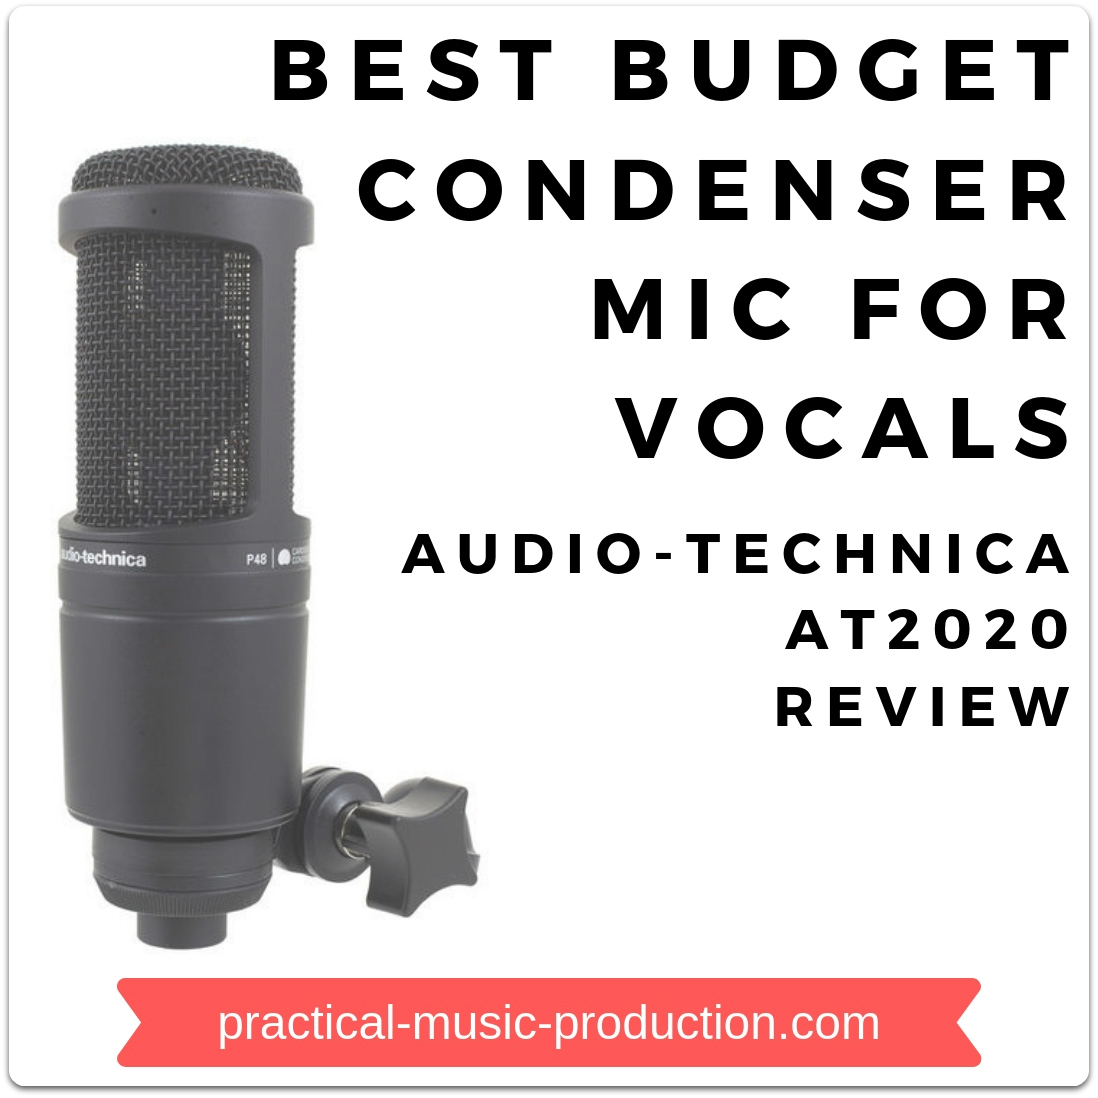 The AT2020 from Audio-Technica is the best budget condenser mic for vocals